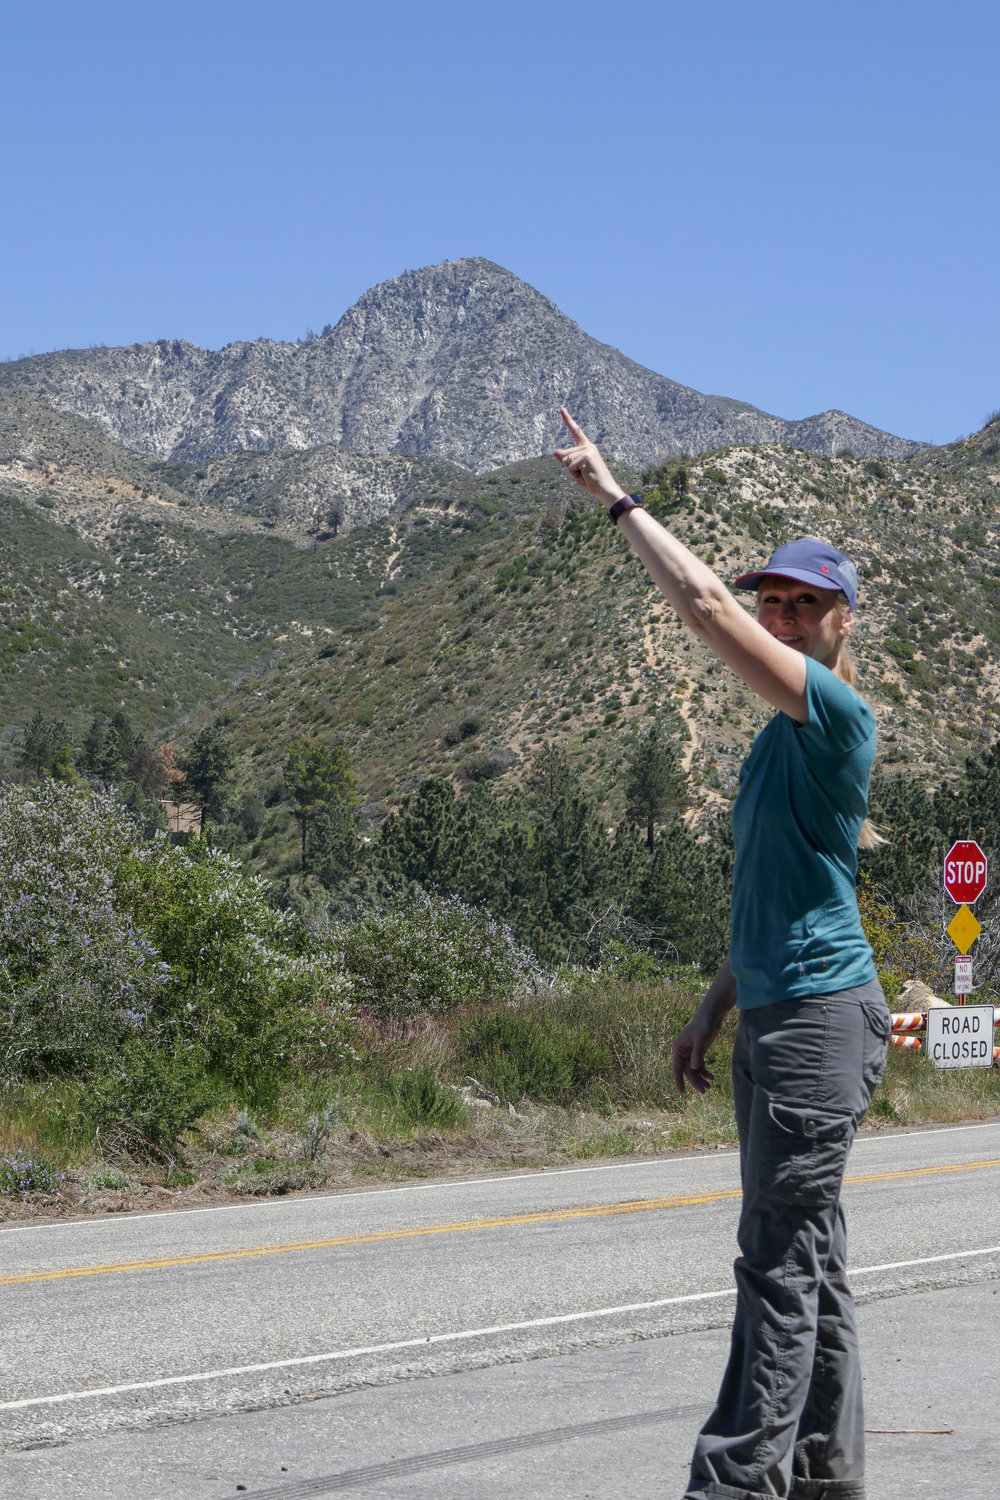 That's me pointing at the mountain we just climbed.  :D